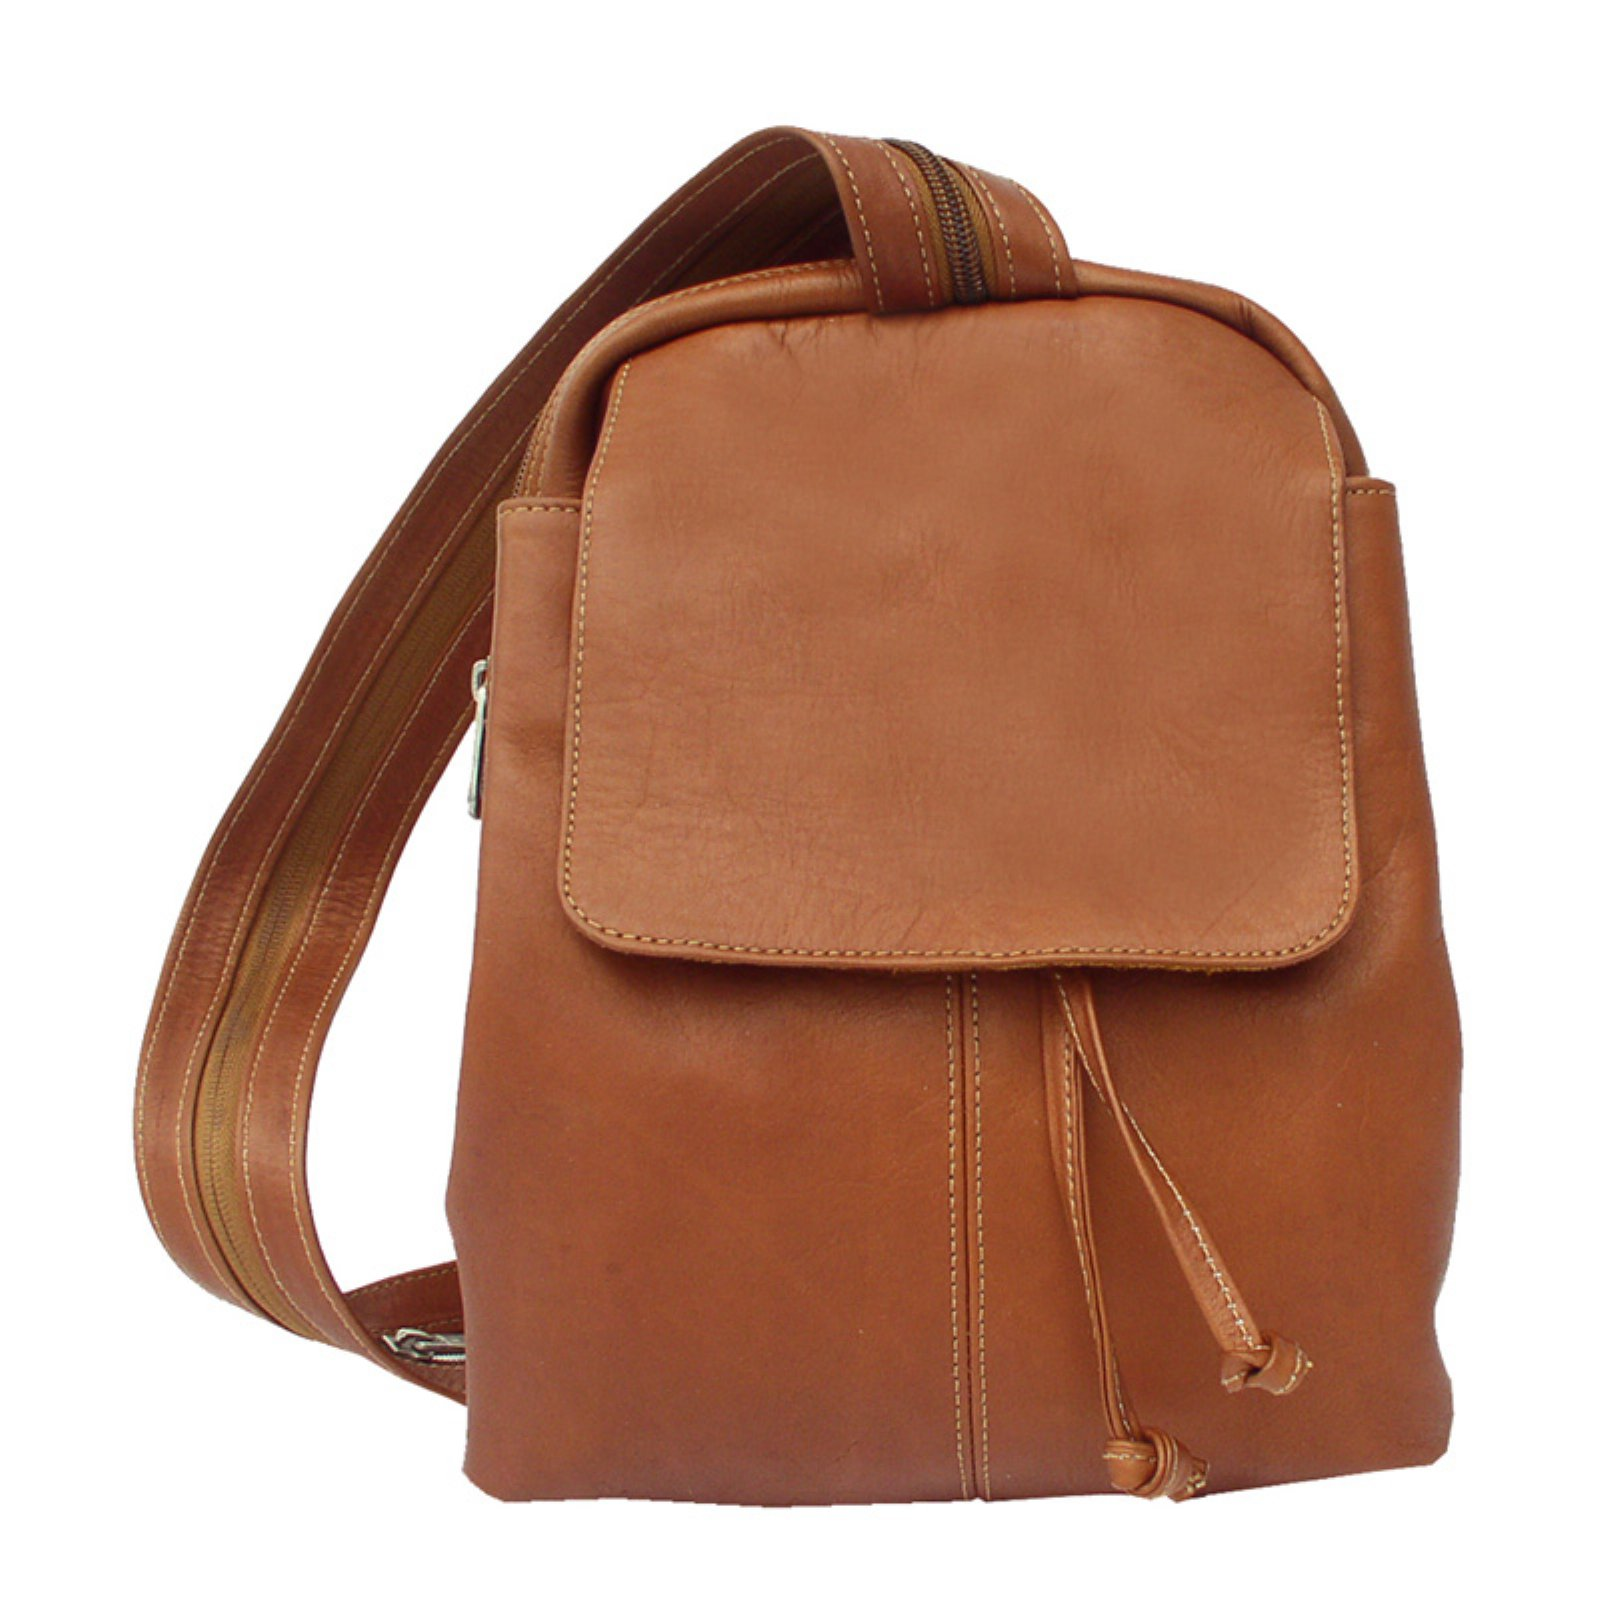 Piel Leather Small Drawstring Backpack - Saddle